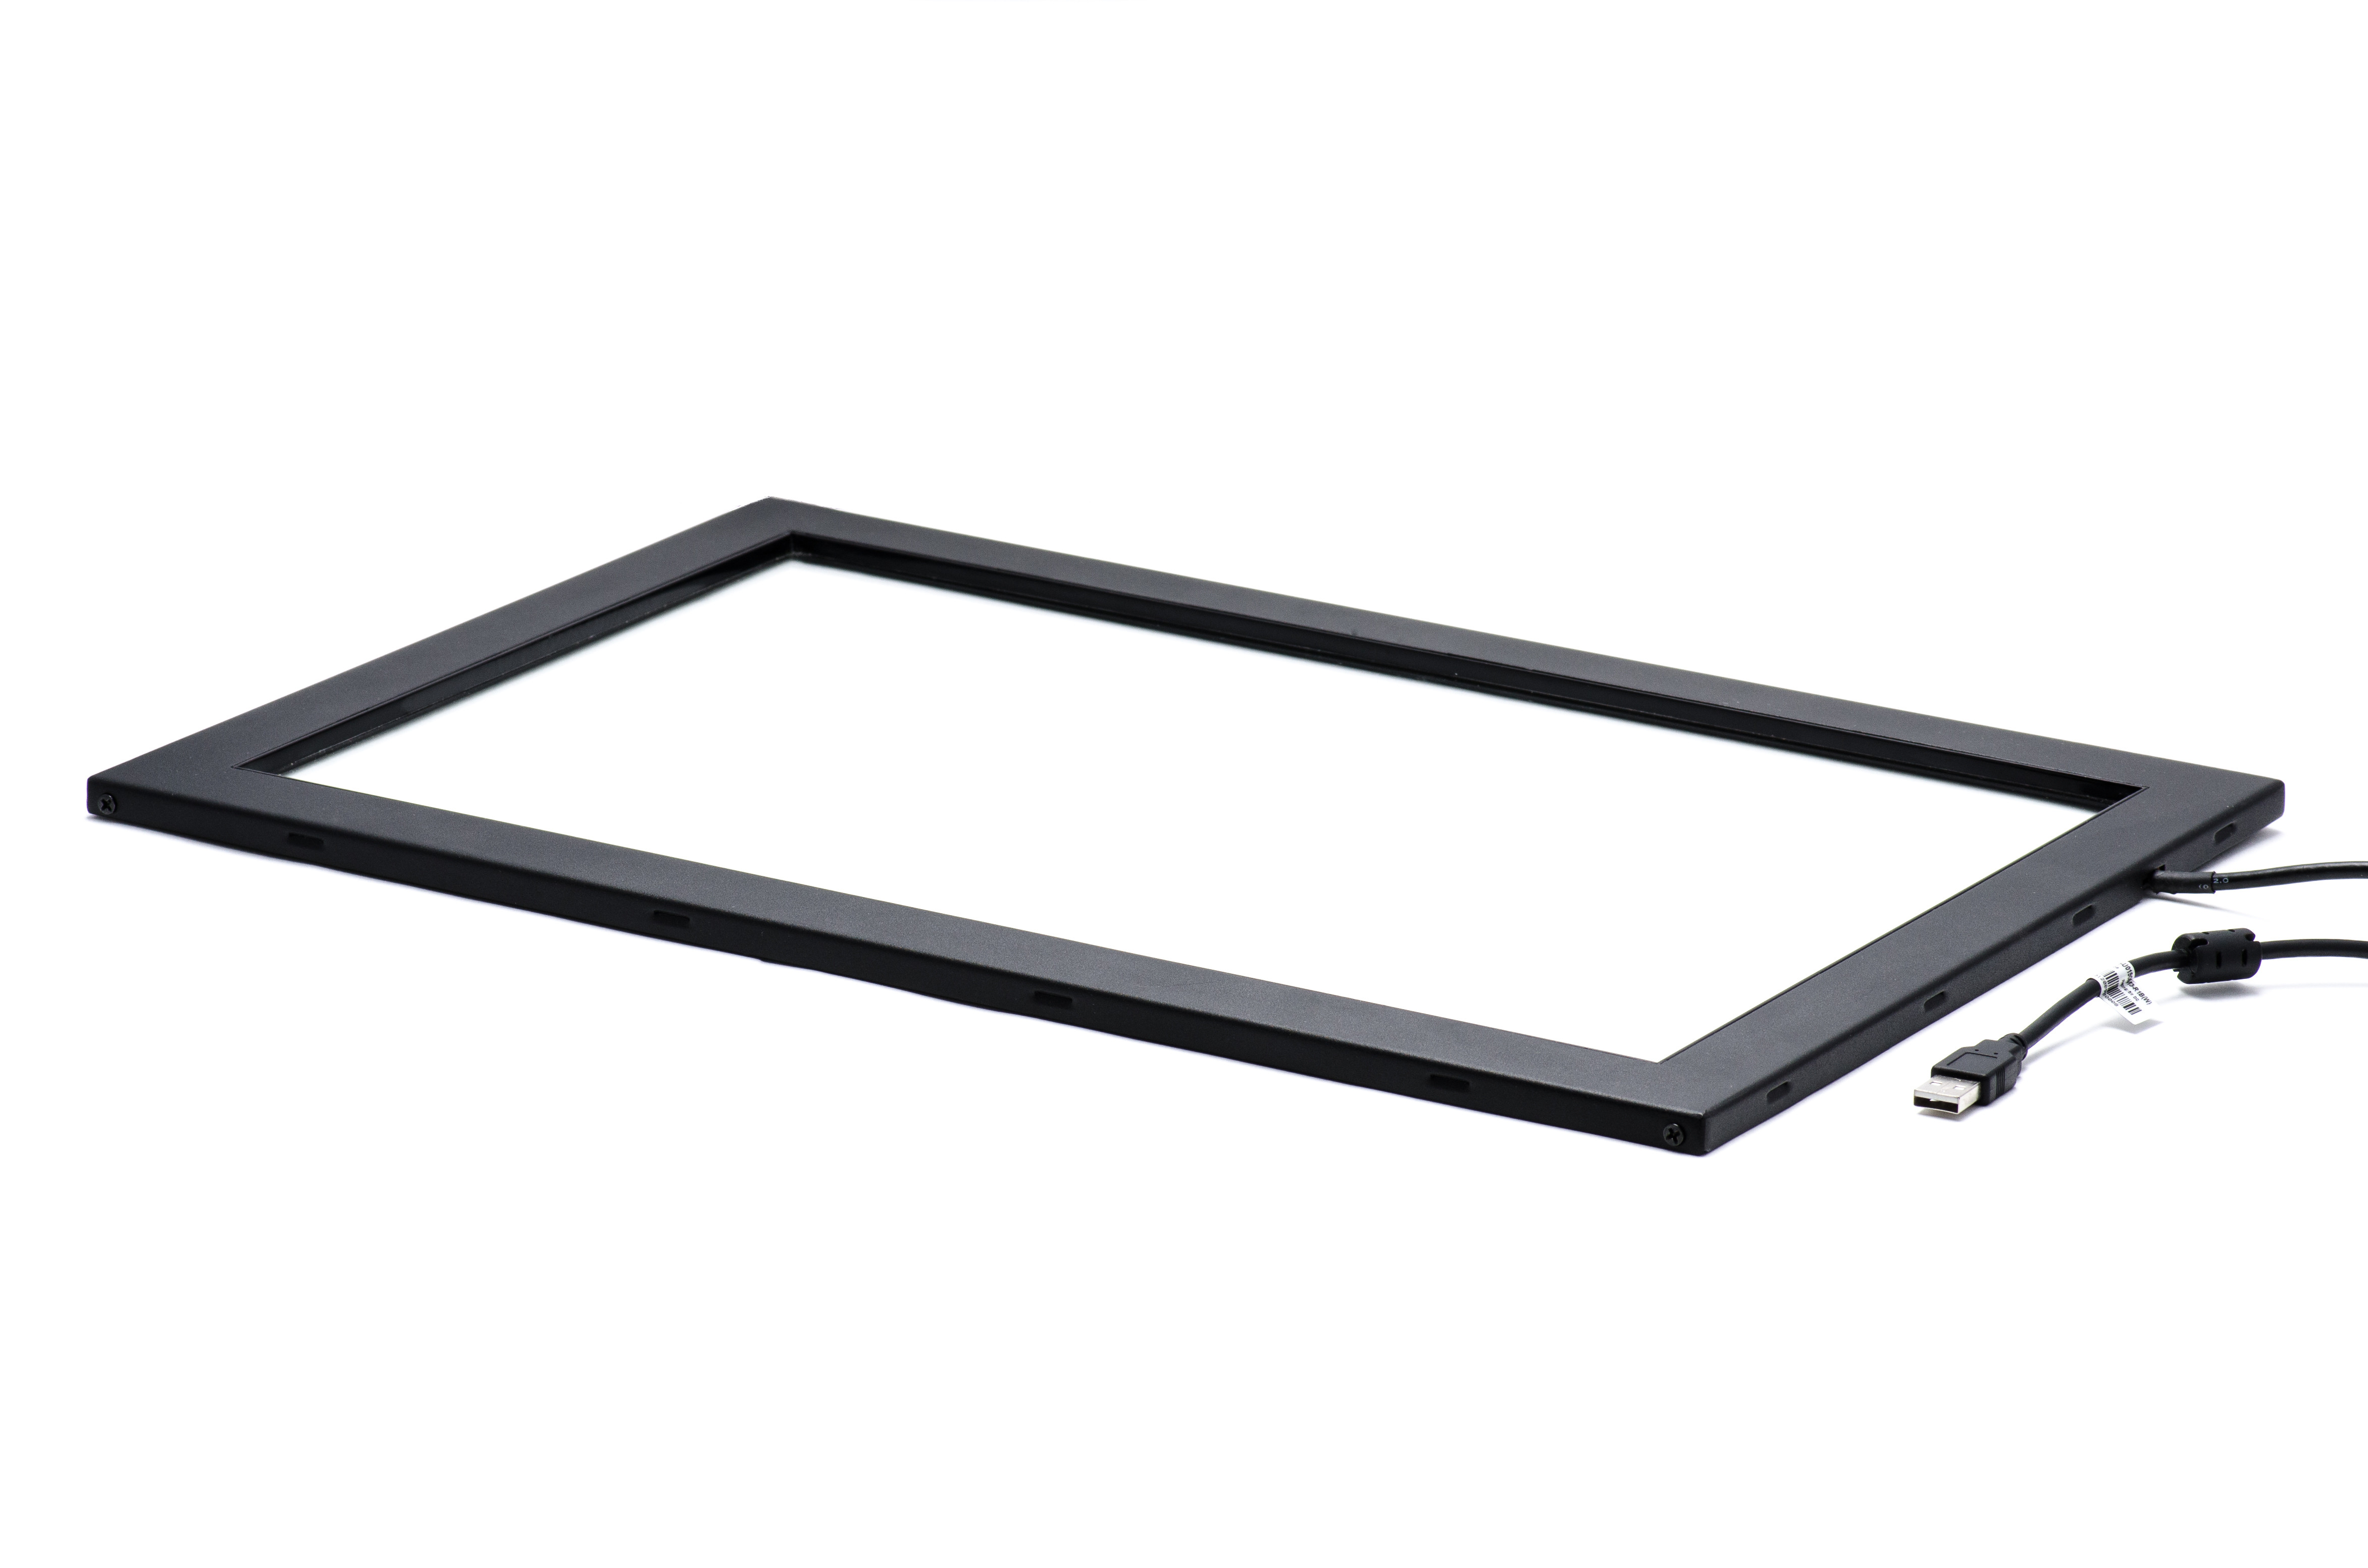 """TOUCH FRAME WITH GLASS KEETOUCH 19""""w KCI-U0190M3-R3G-W-01"""